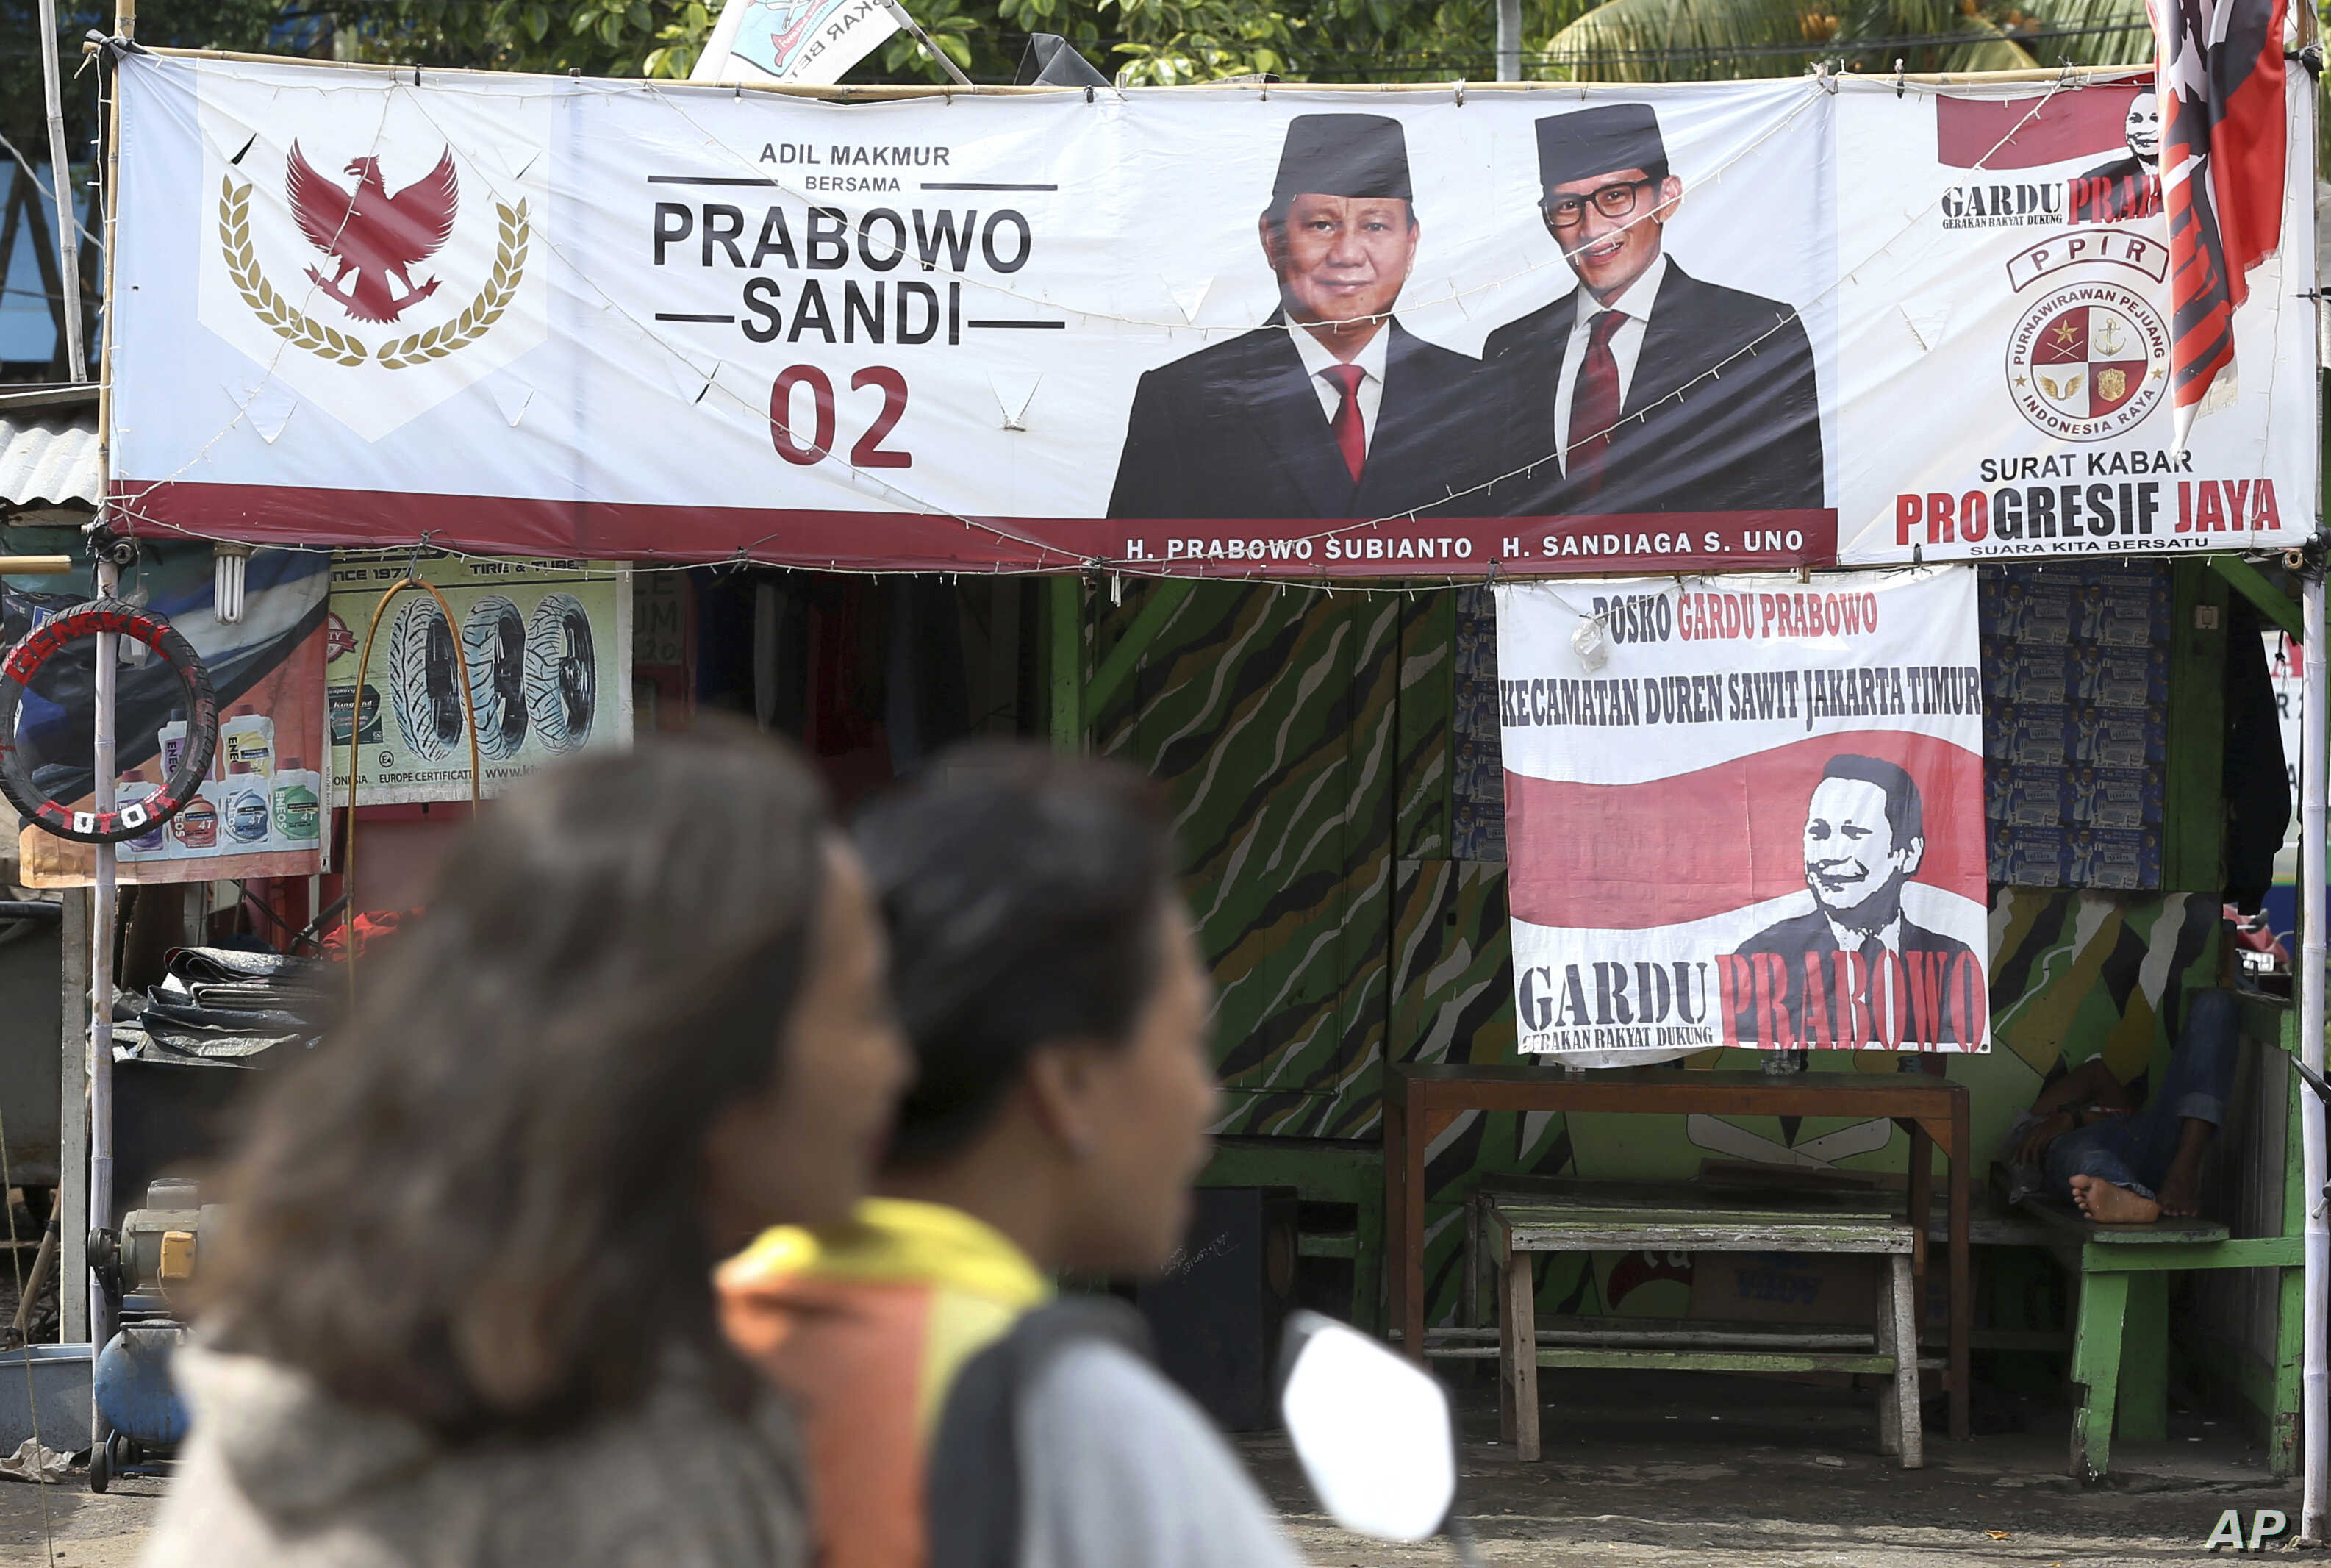 A couple rides a motorcycle past a campaign banners for Indonesian presidential candidate Prabowo Subianto, left, and his running mate Sandiaga Uno in Jakarta, Indonesia, Thursday, Jan. 17, 2019.